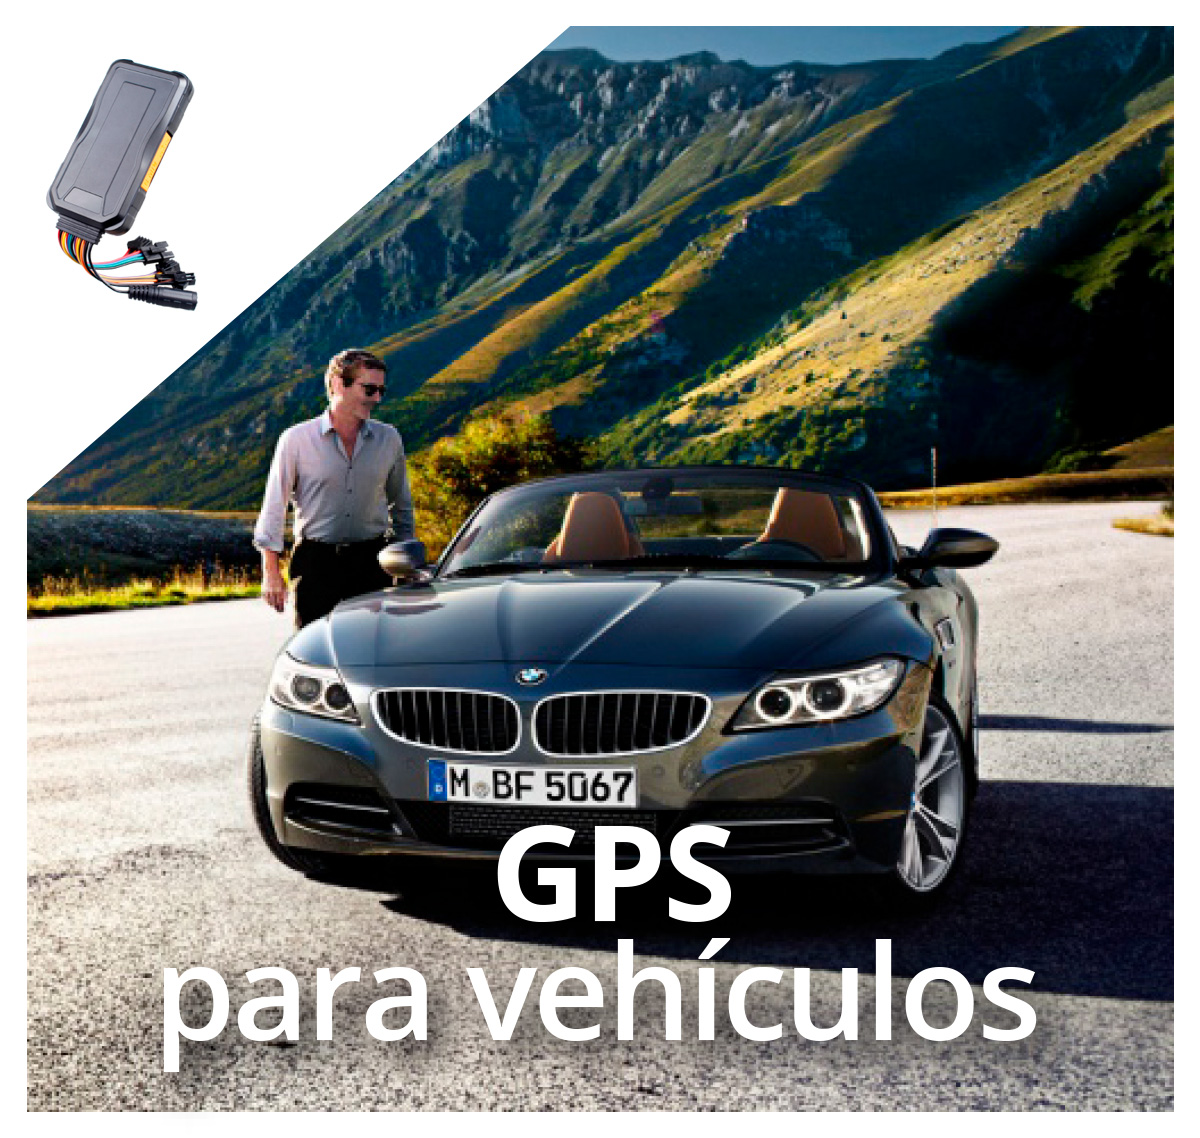 BBOX Security Seguridad guardias virtuales vehiculos - Servicio de Rastreo Satelital y GPS en Guadalajara | BBOX Security